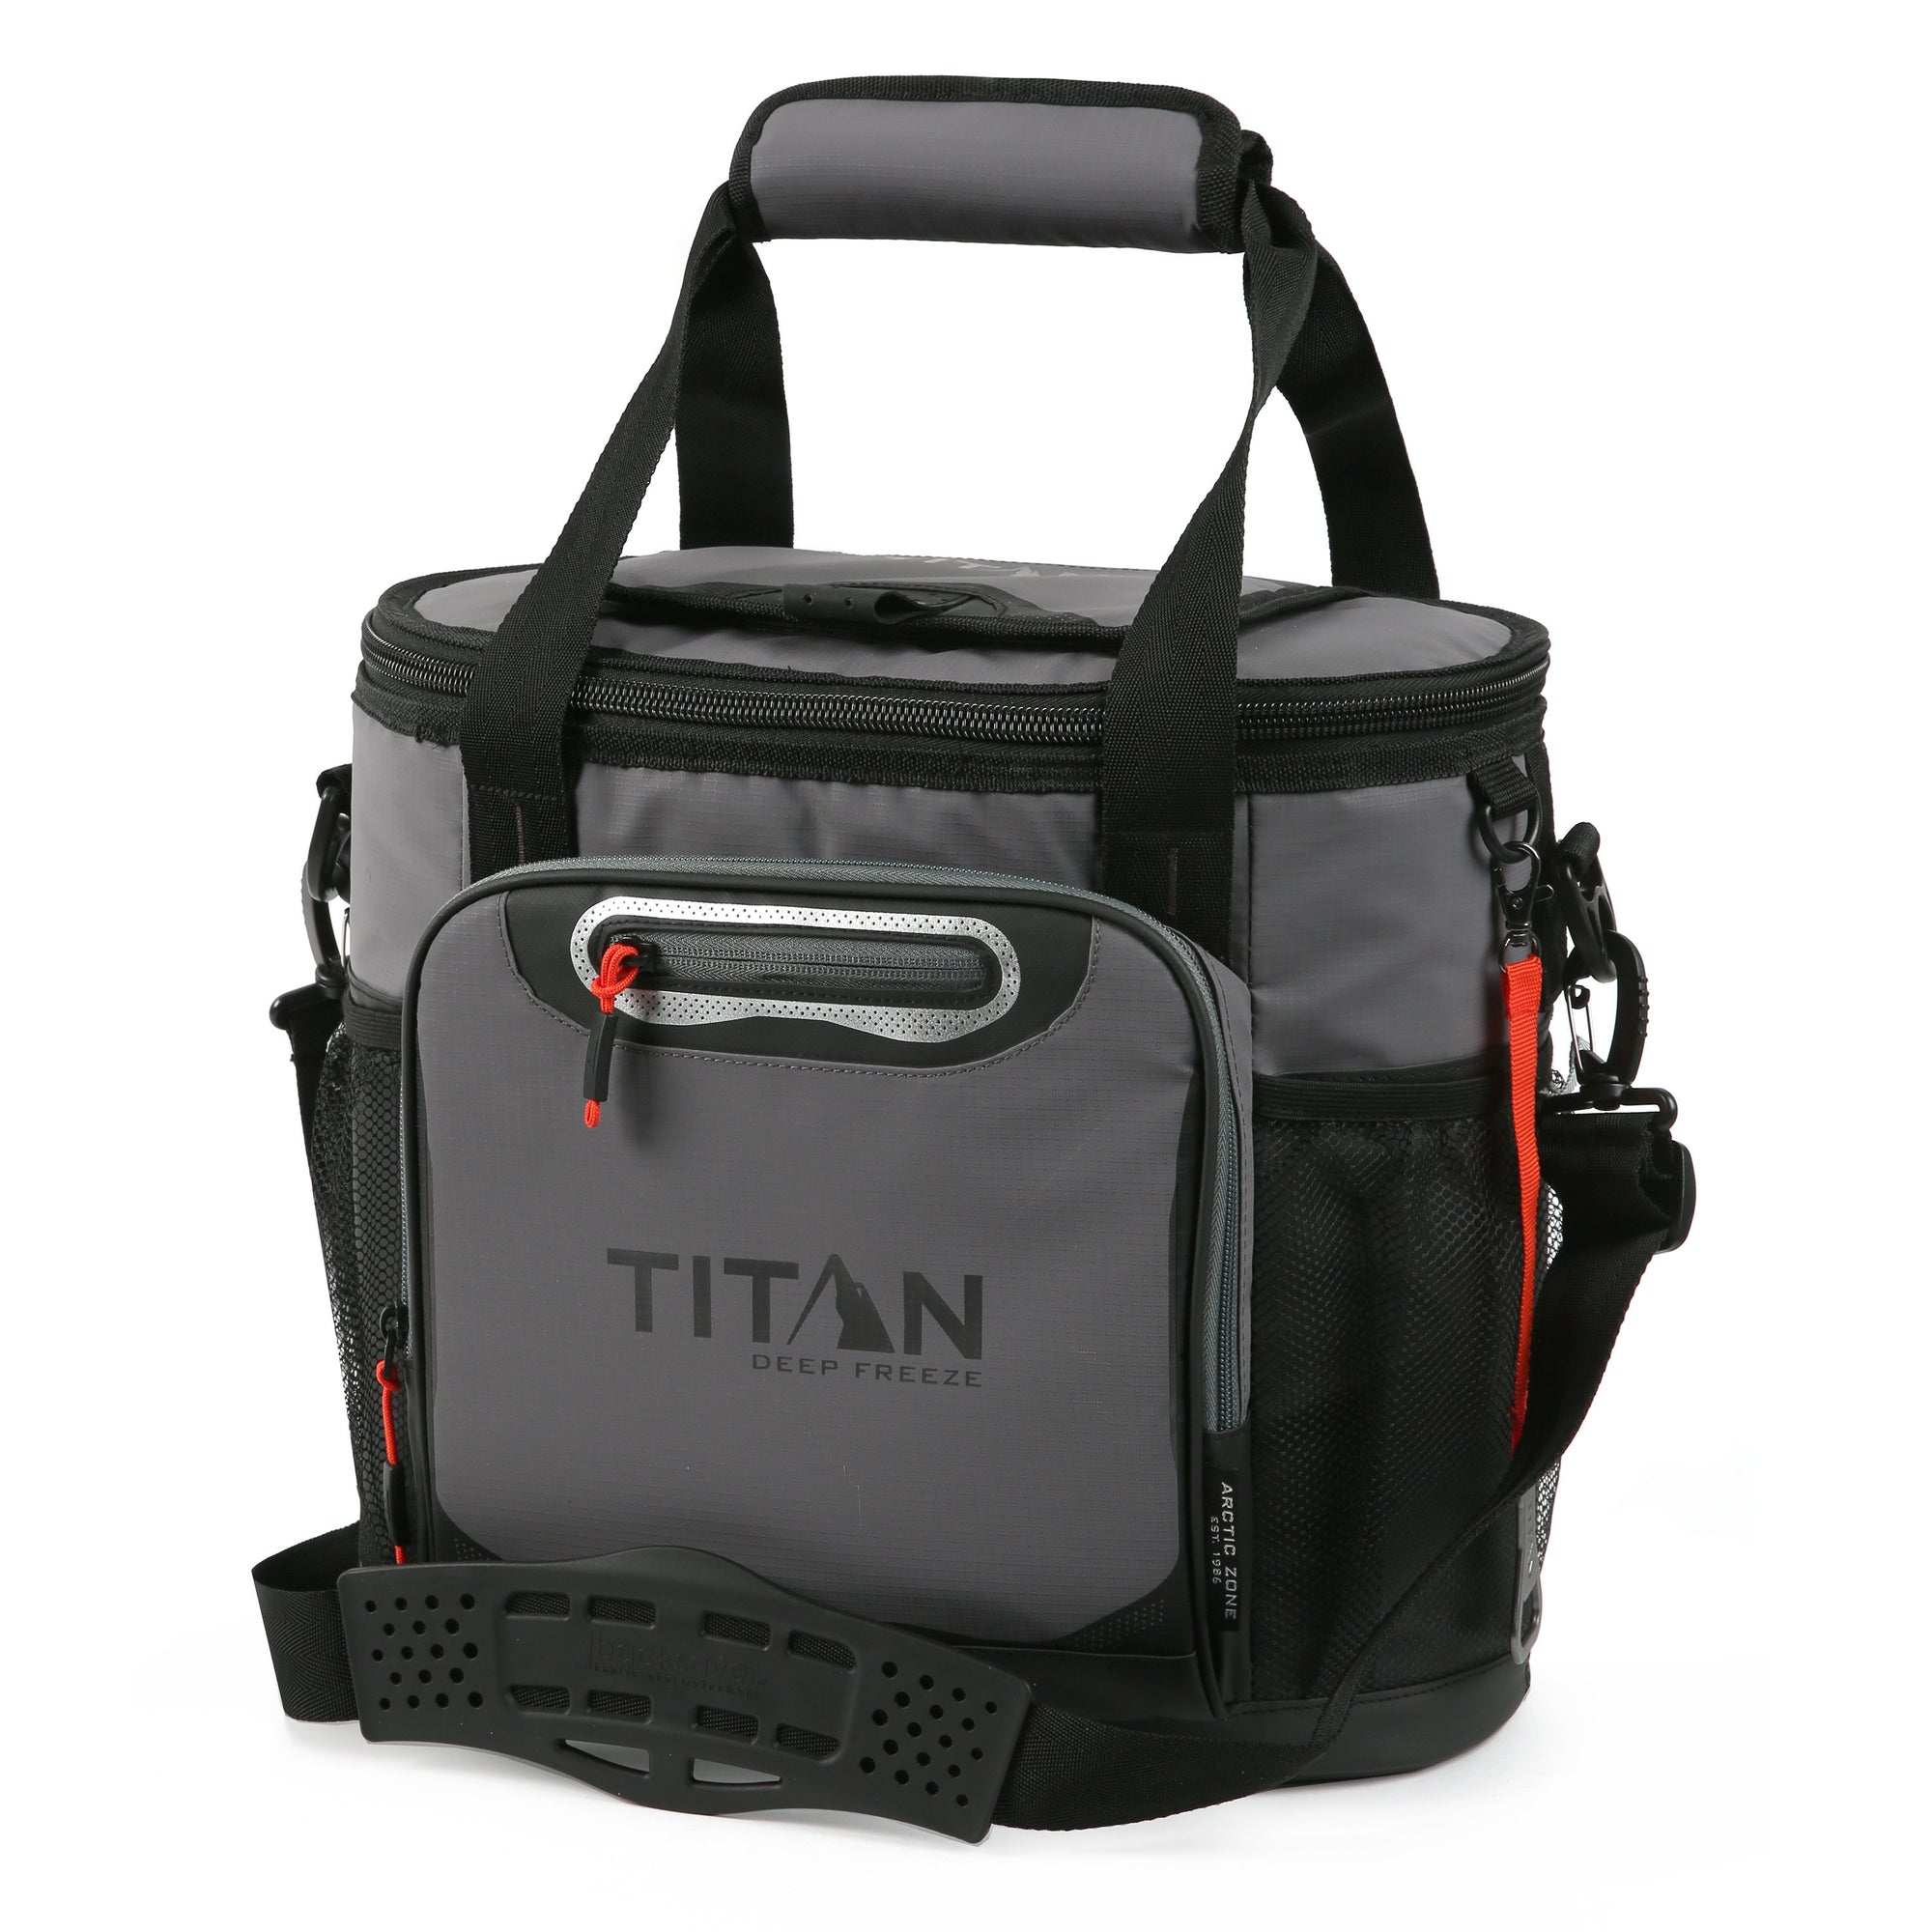 Titan Deep Freeze 24 Can Bucket Tote - Sharkskin Gray - Front, closed